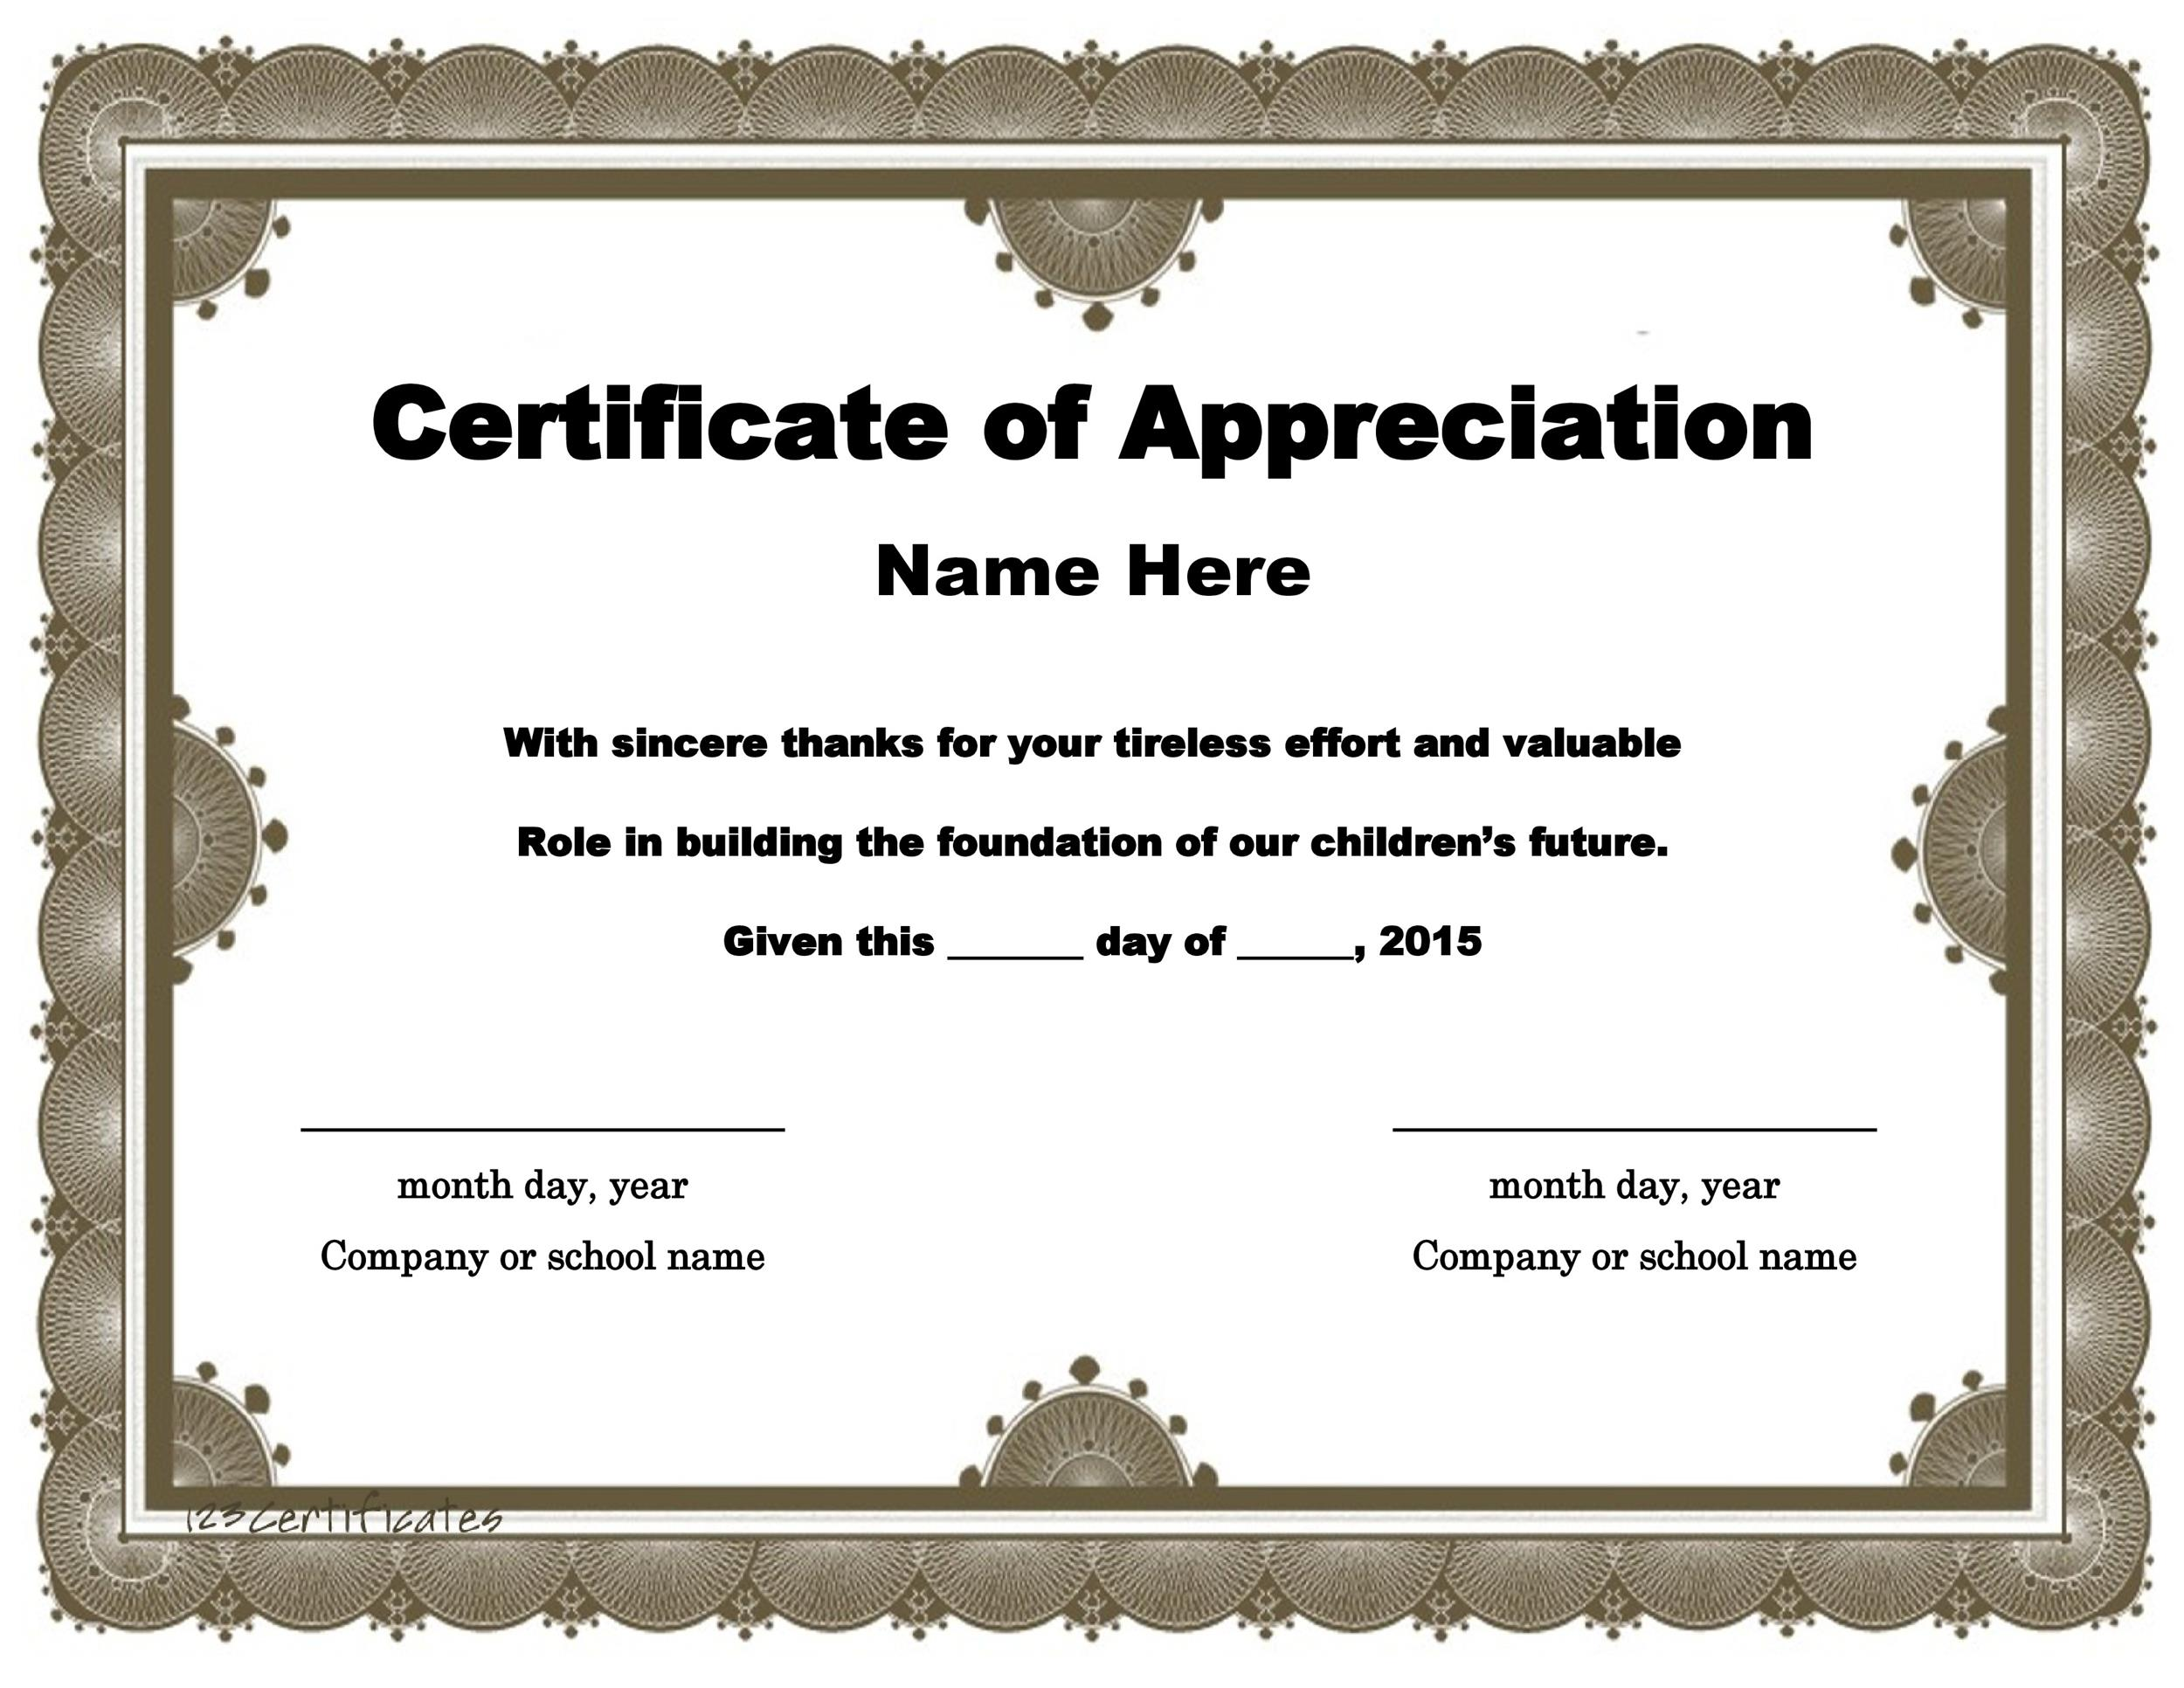 30 free certificate of appreciation templates and letters printable certificate of appreciation 03 yelopaper Images